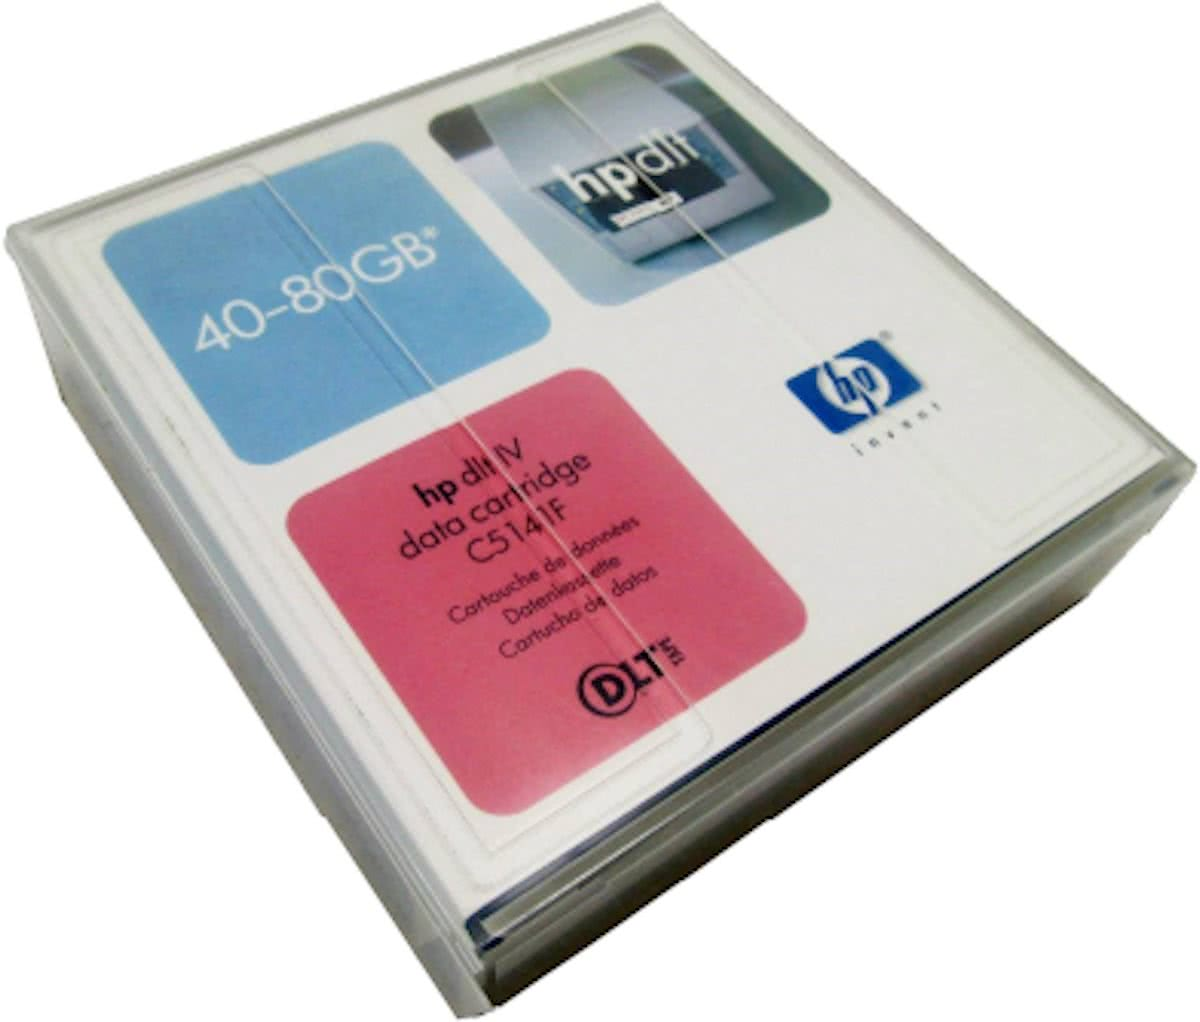 Data Cartridge DLT IV 40-80GB Nativecapacity of 20GB in a DLT 4000 tape drive